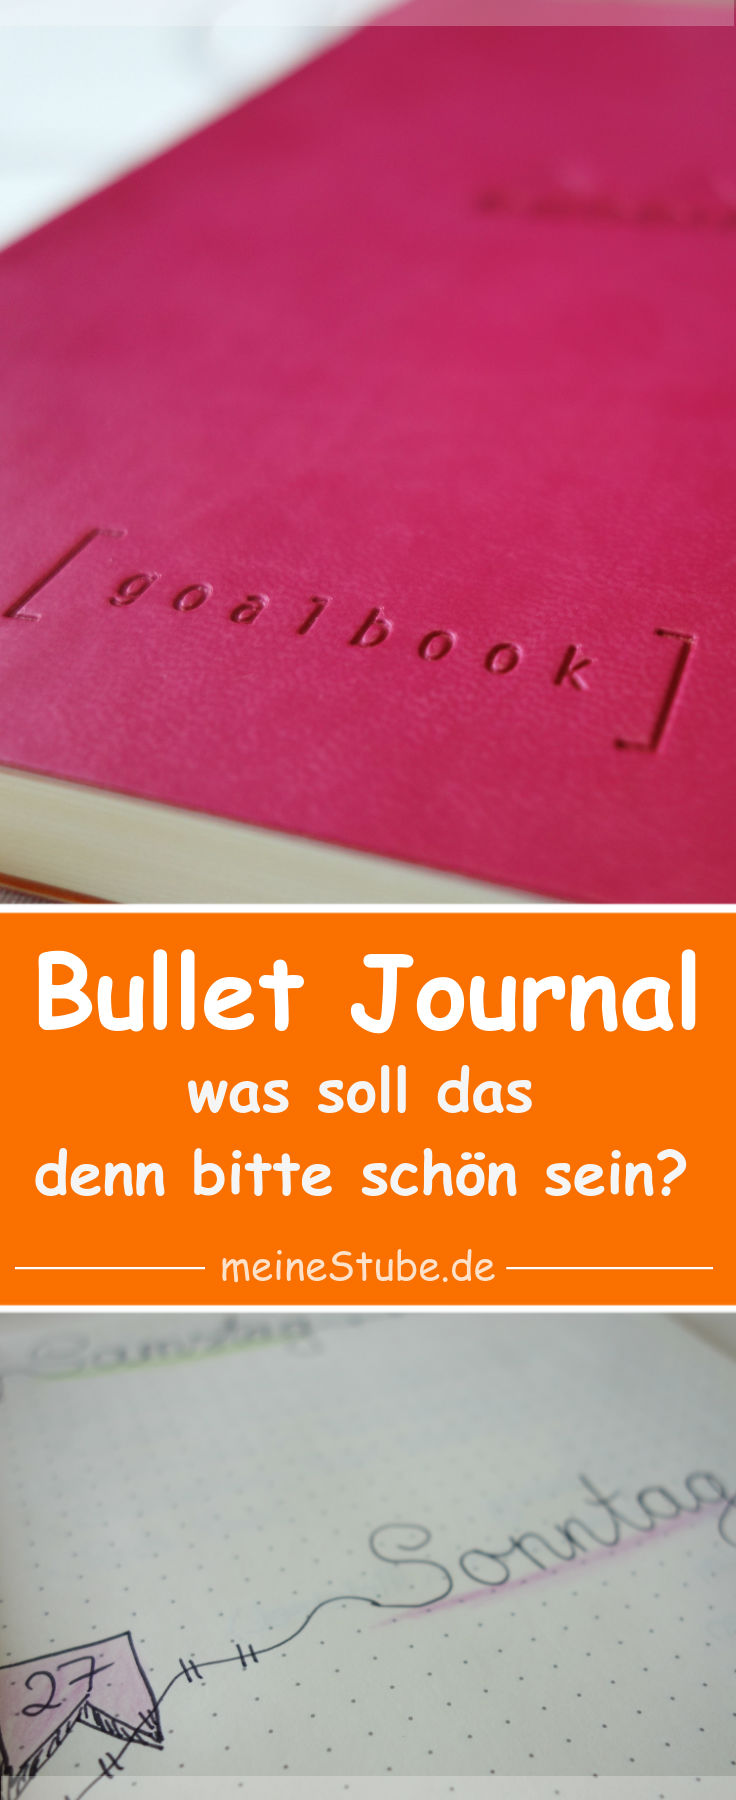 Bullet-journal-was-bitte.jpg